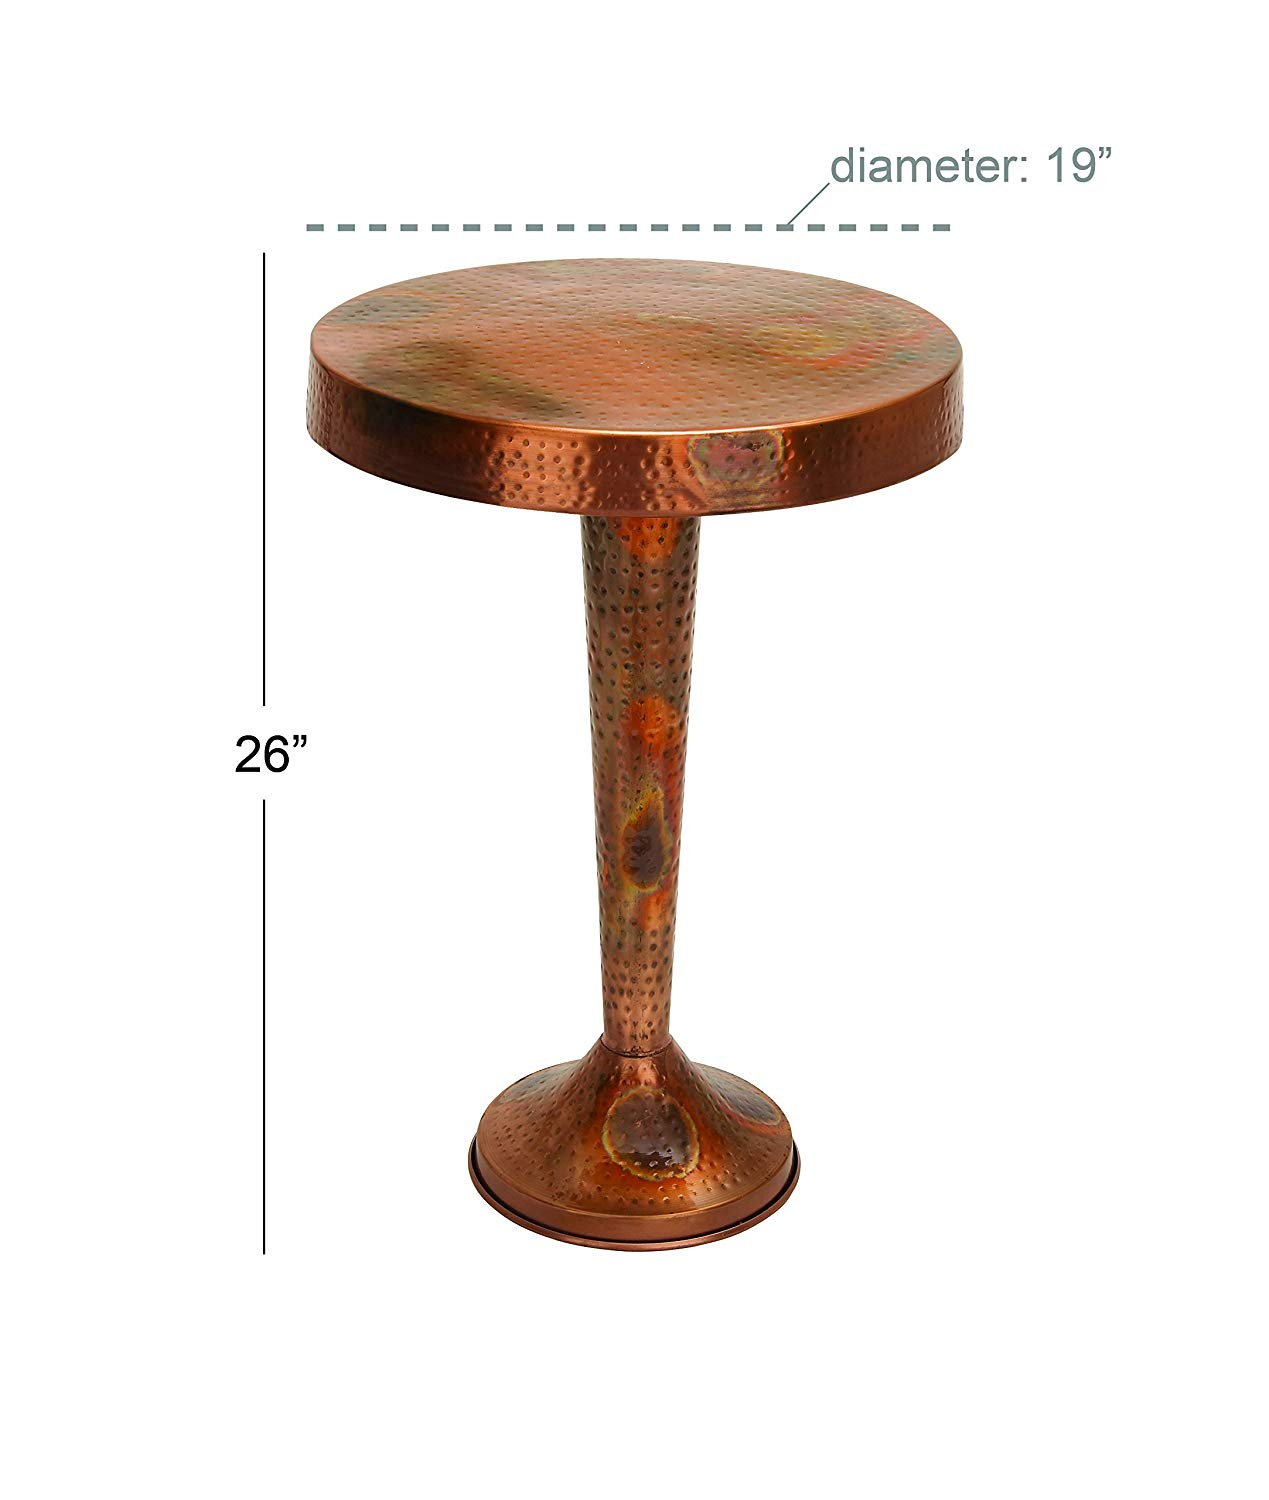 deco metal copper accent table inch cylinder drum kitchen dining oak lamp bedside lights bar bistro tiffany lily shades storage chest west elm buffet target file cabinet build